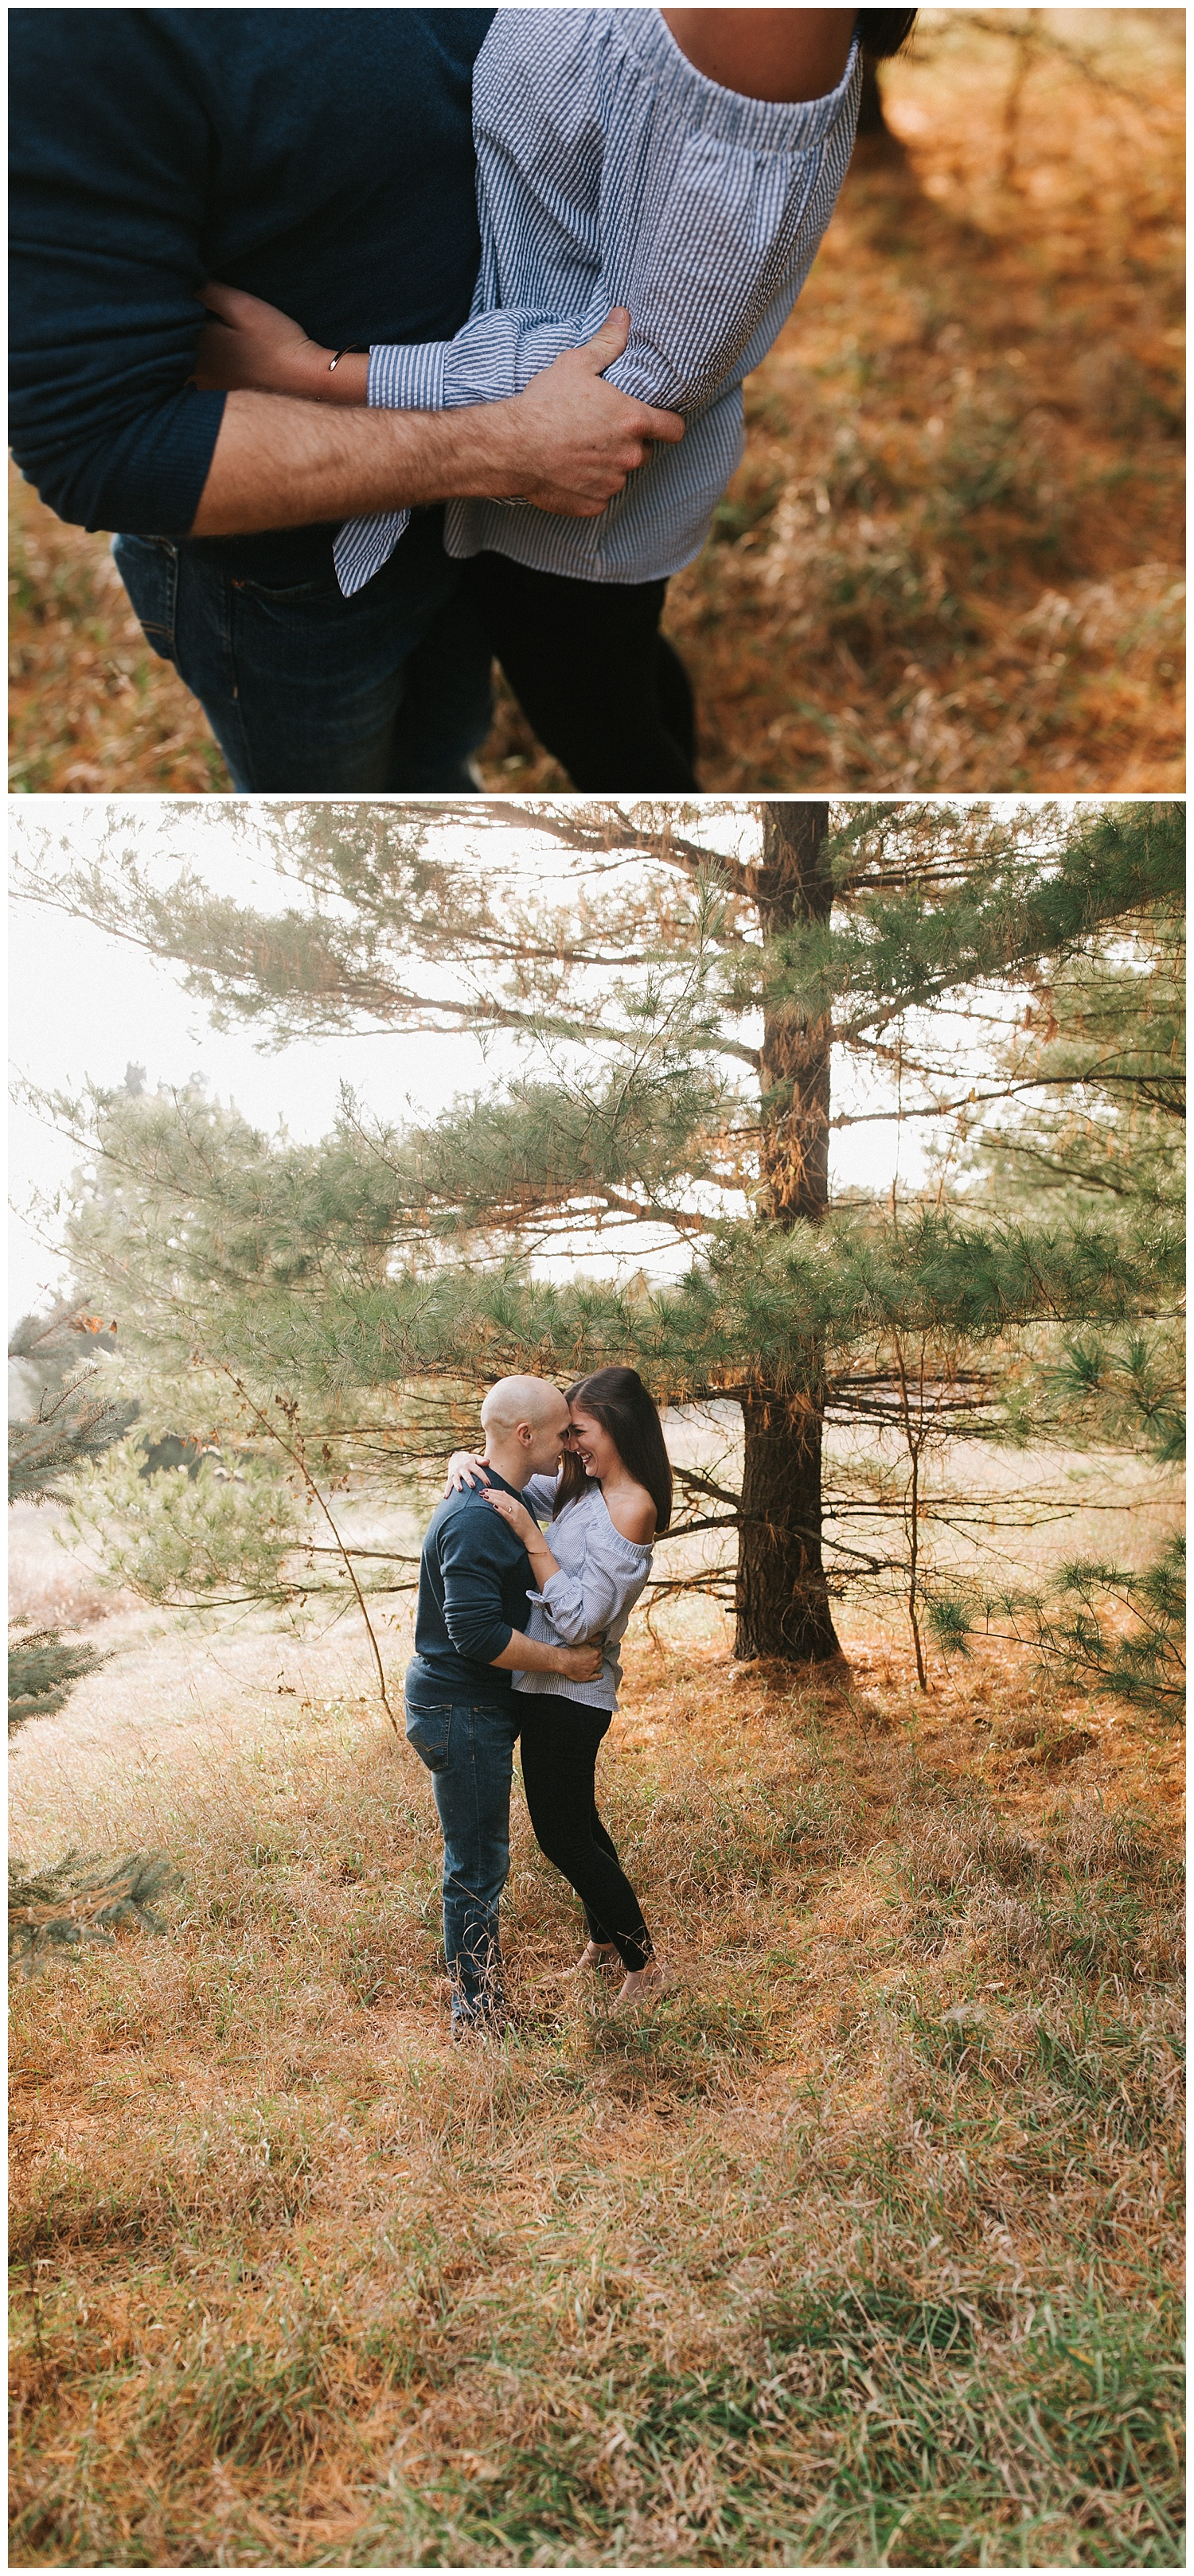 midwest_adventurous_engagement_session_traveling_photographer_0005.jpg